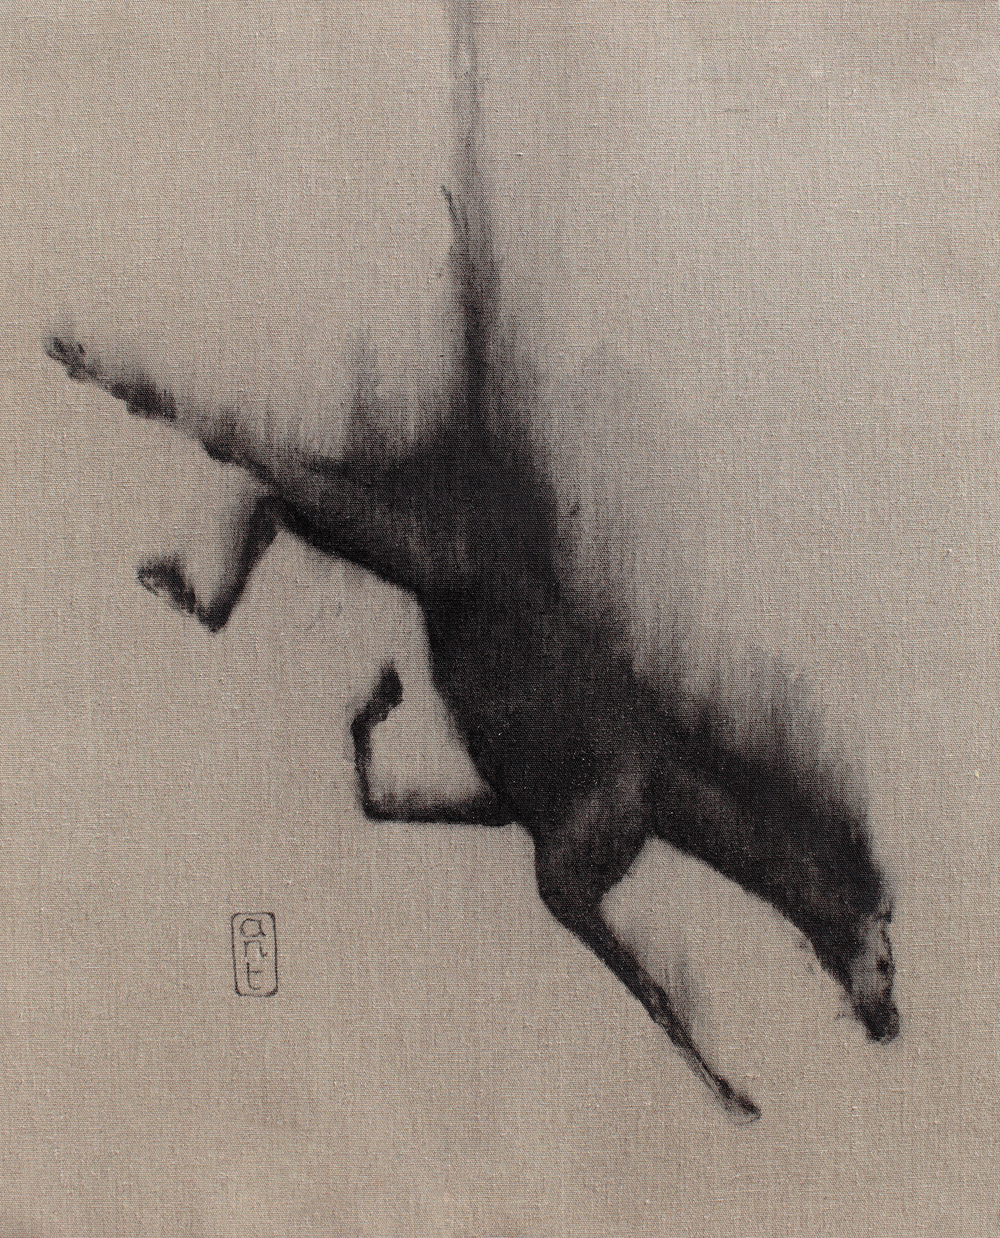 2010. Falling Horses: Rayo, Pigment & Gesso on Linen. 800 x 650mm.